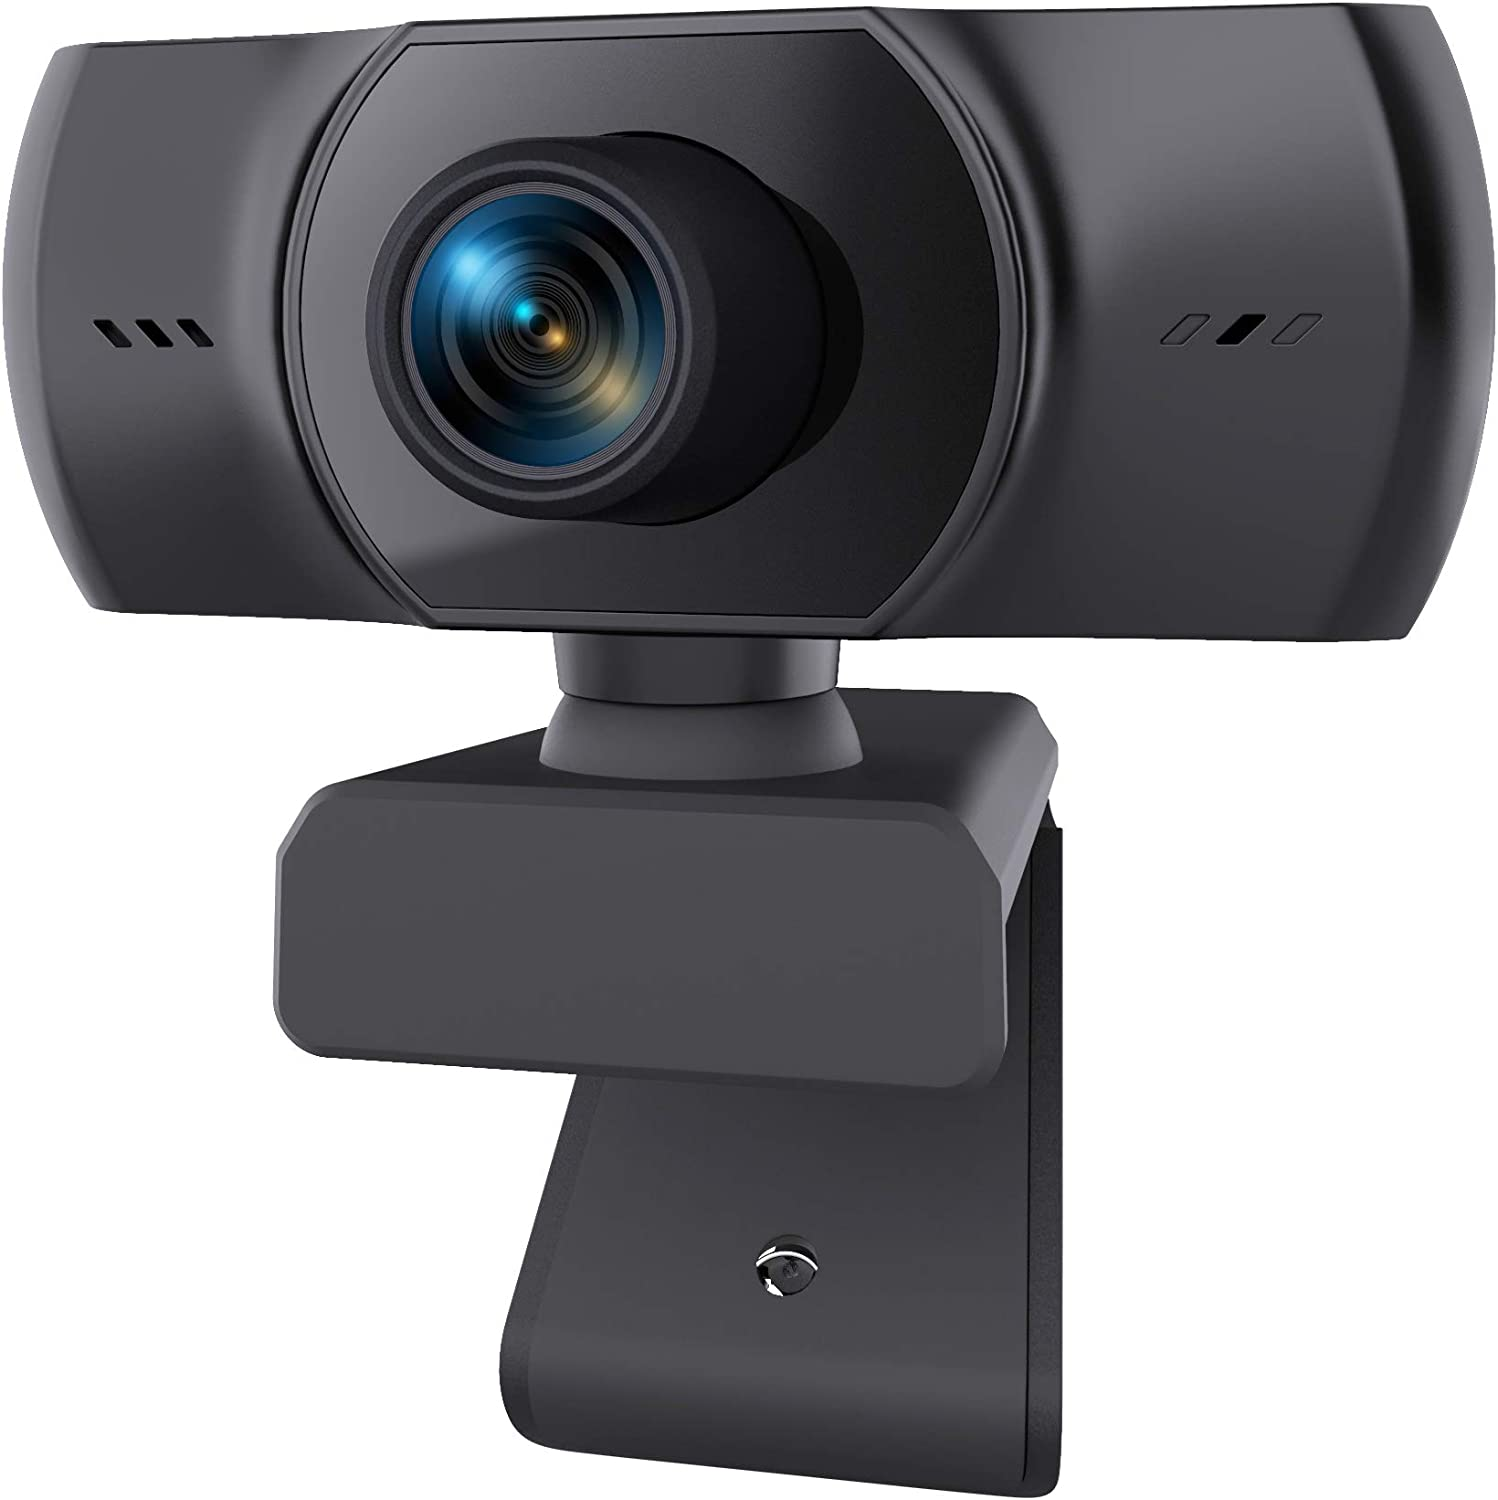 1080P Webcam with Microphone, HANRICO HD Streaming Web Camera, Compatible with Mac Laptop PC Computer, Plug and Play, Noise Reduction, Wide Angle USB Camera for Zoom/Skype/YouTube, Conferencing/Games